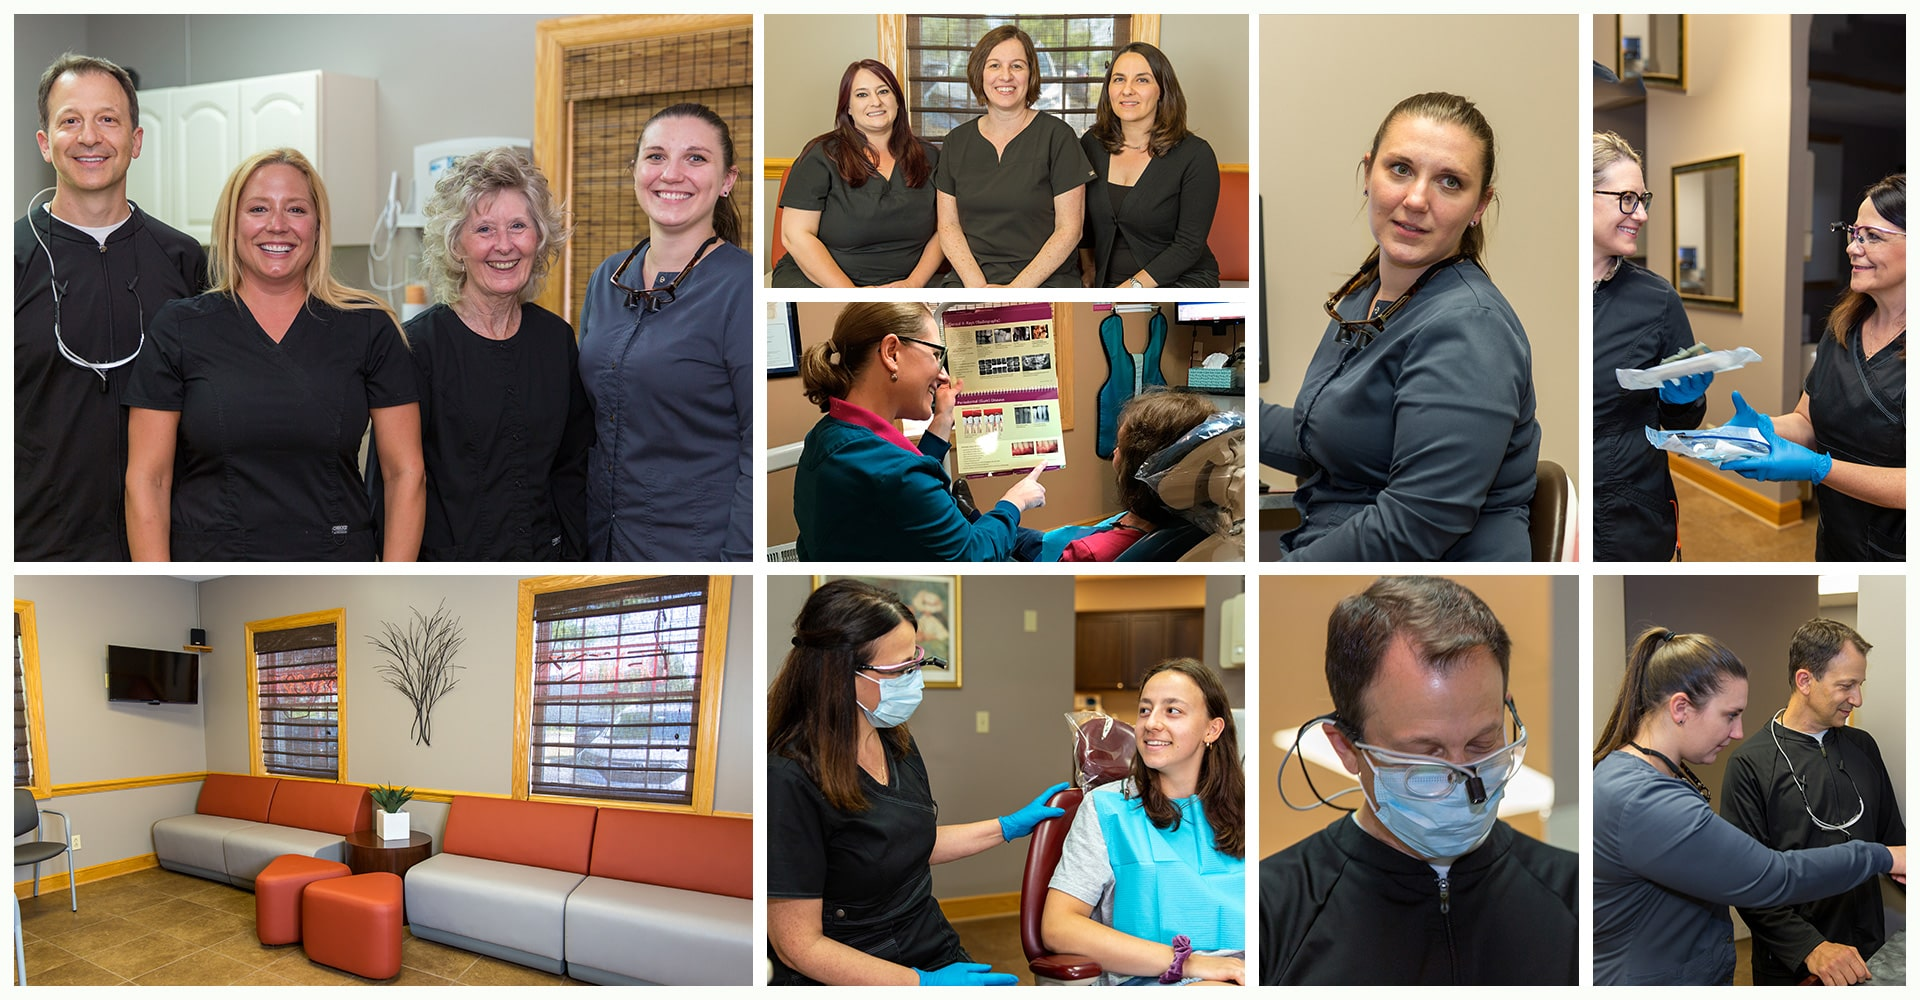 A collage showing Dr Berardi and Dr Hetterich working with their expert team